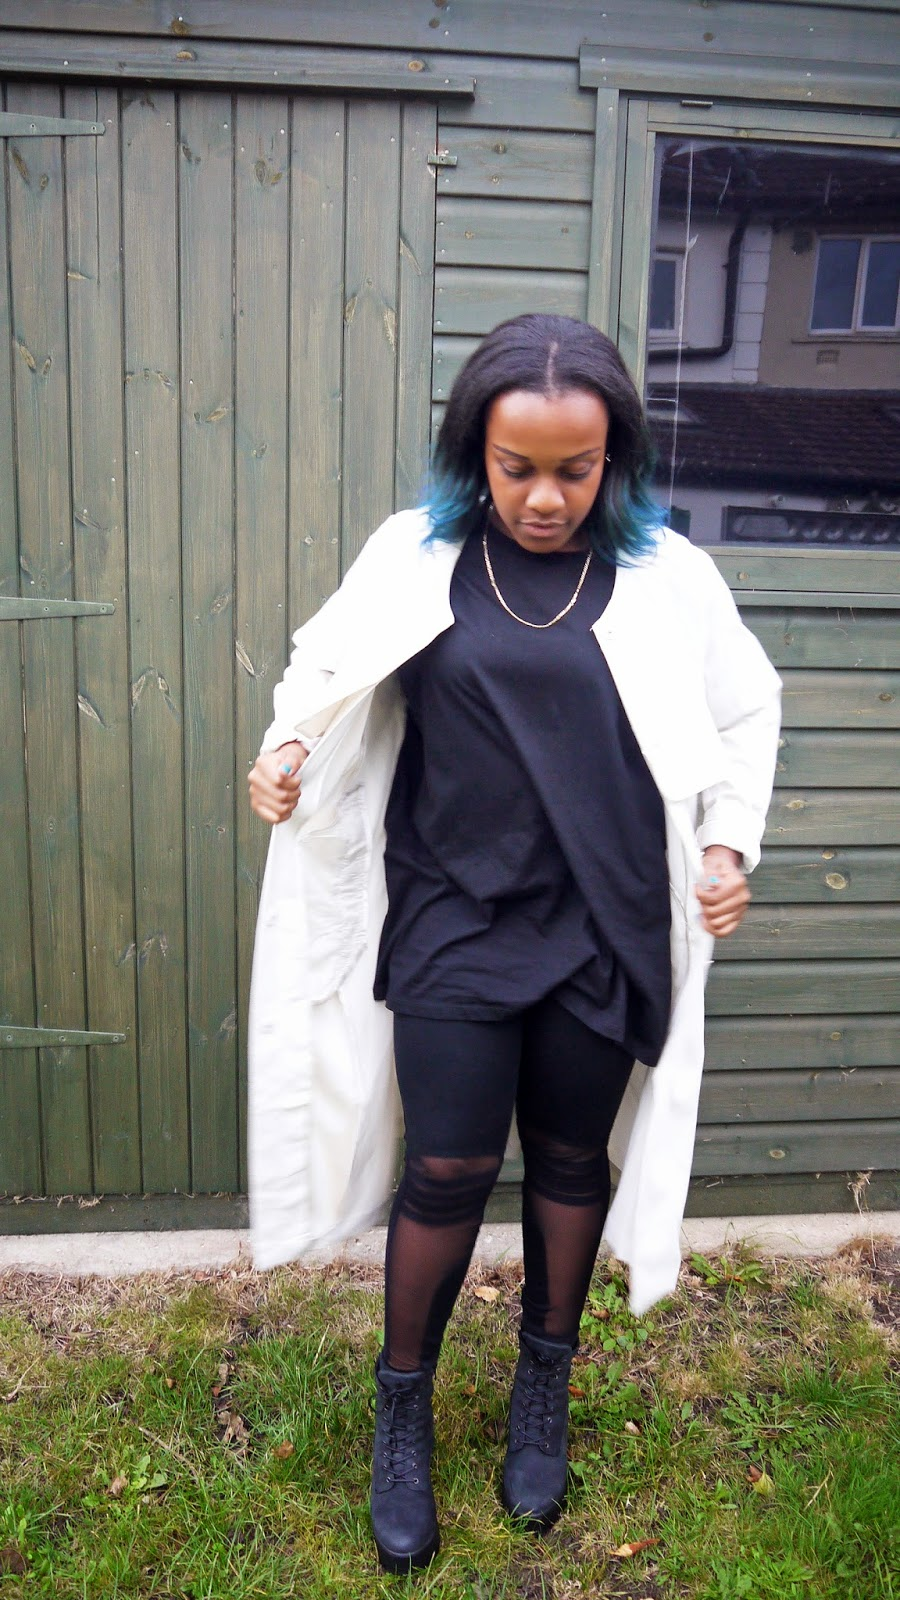 La Mode D'Emm Black ASOS Oversized T-Shirt Mesh Panel Topshop Leggings New Look Chunky Cleated Black Boots HM Duster Coat